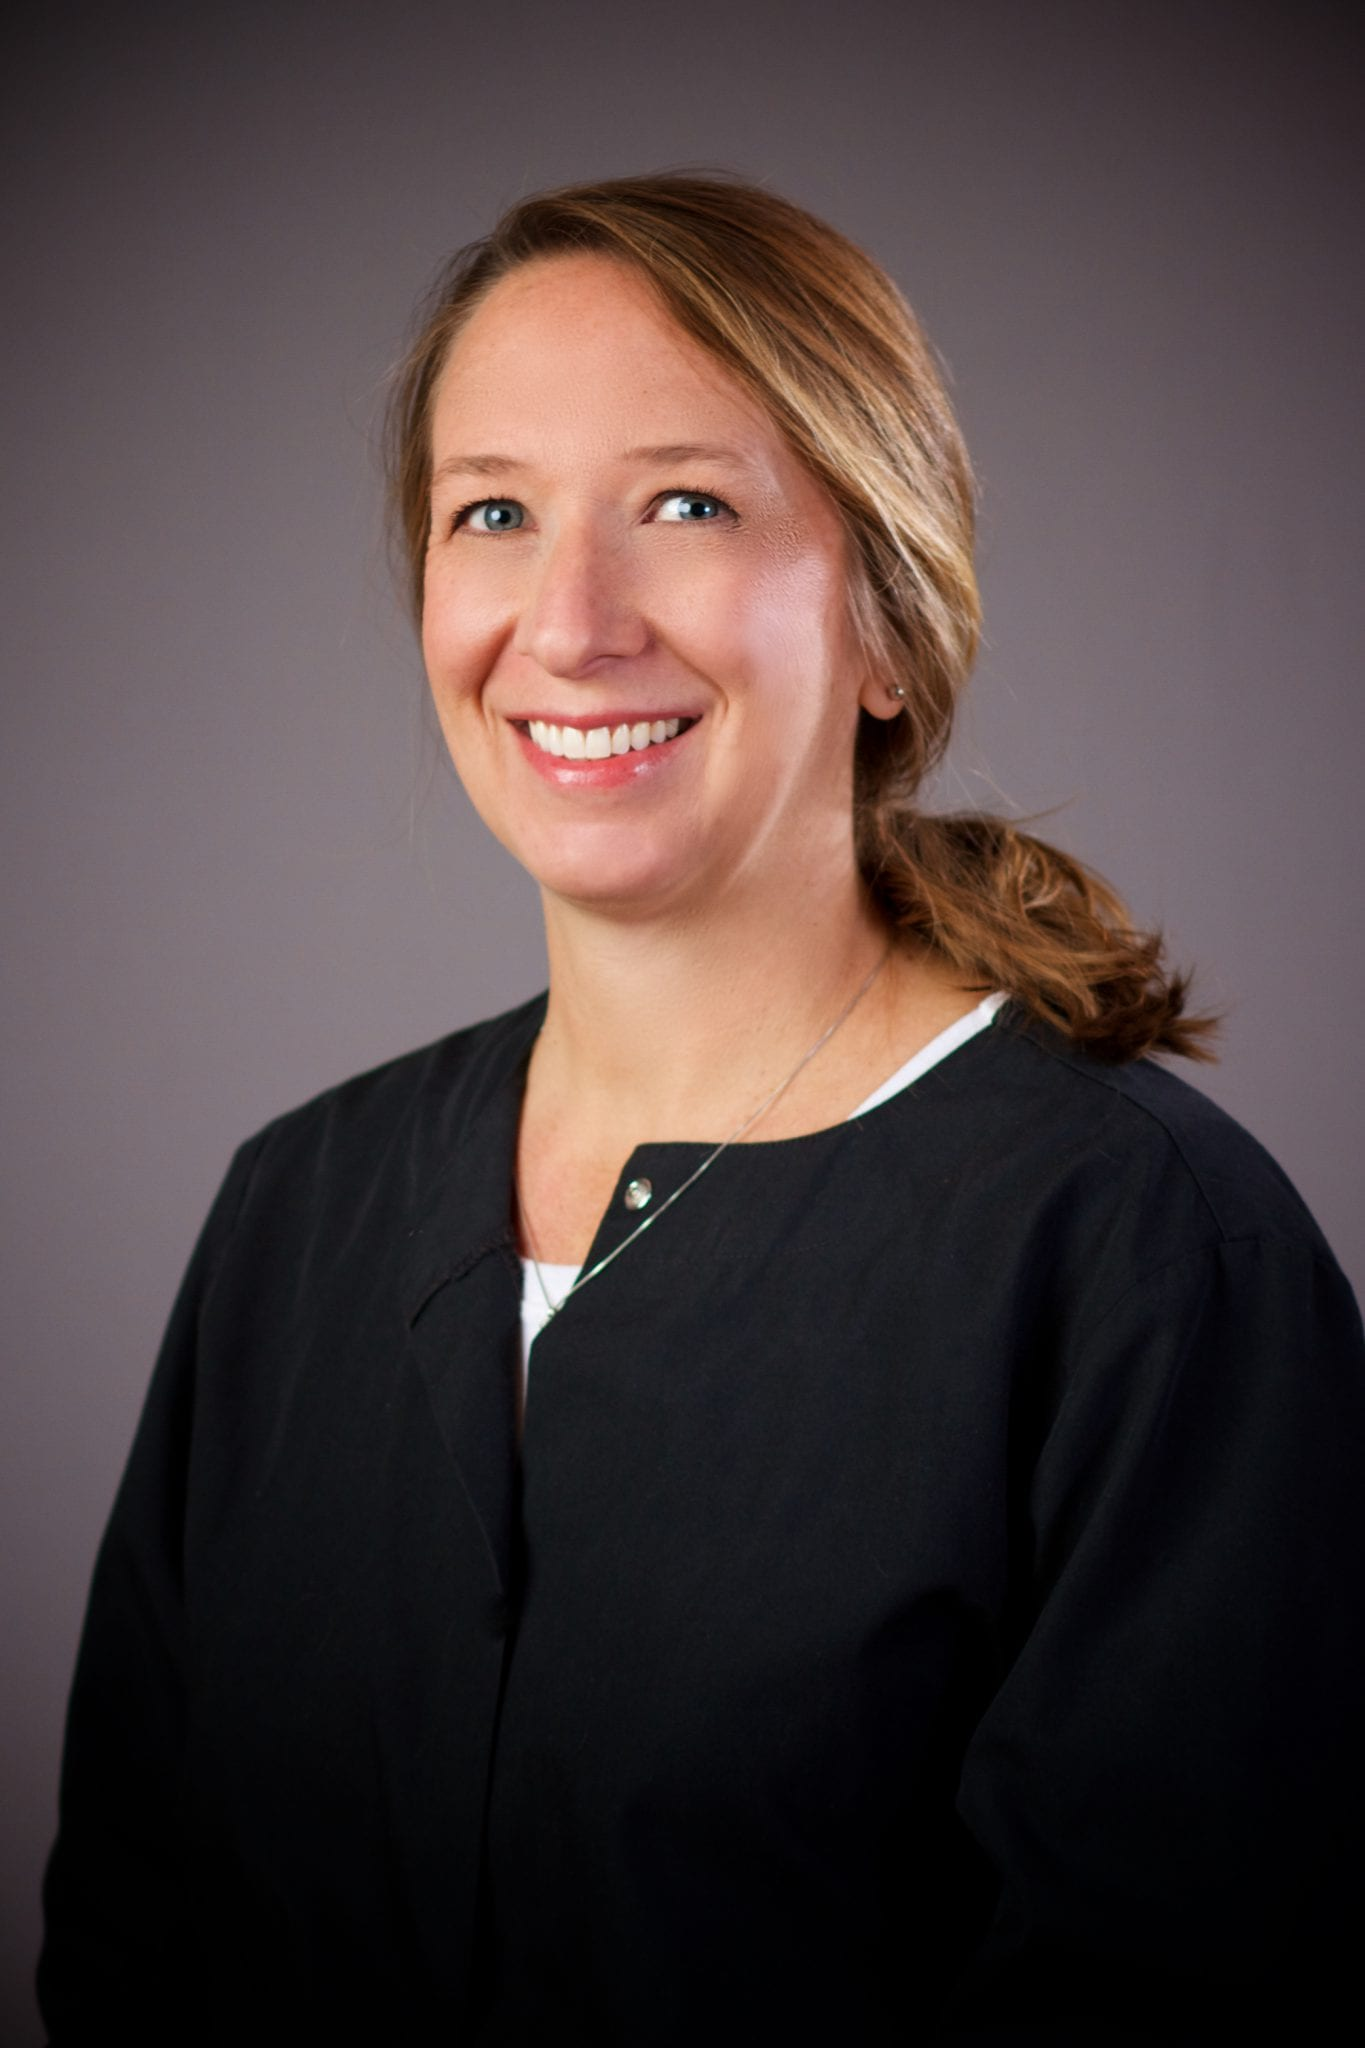 Ginny who is a Hygienist at Birdwell and Guffey Family Dentistry in South Knoxville